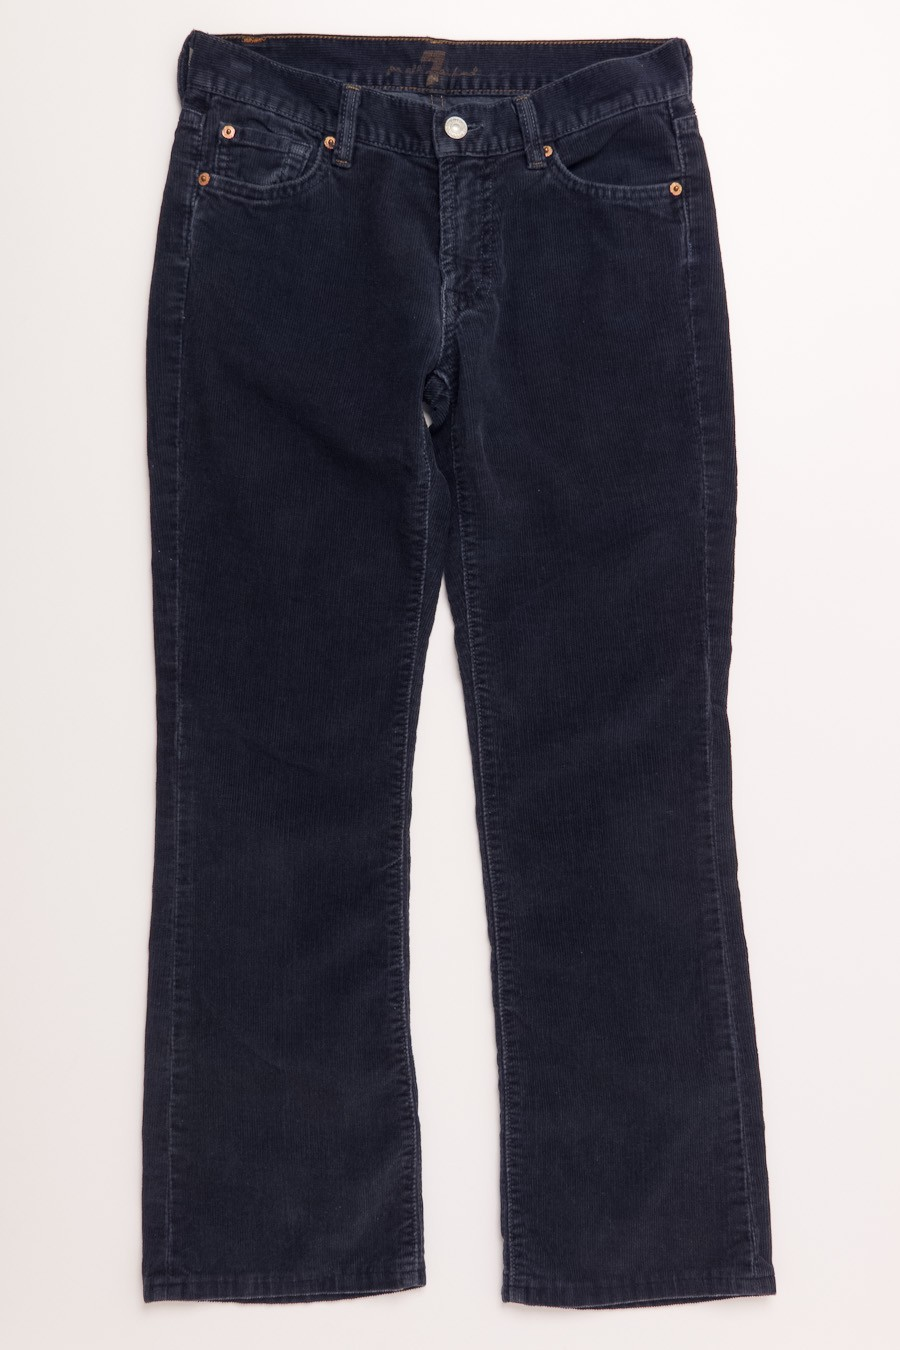 Popular Burberry Brit Skinny Corduroy Pants Trade In Your Tired, Black Wool Pants For A Pair Of Dark Cords That Go With Everything Old Navy Womens BootCut Cords These Cords Are As Flattering As They Are Affordable Theres Almost No Excuse Not